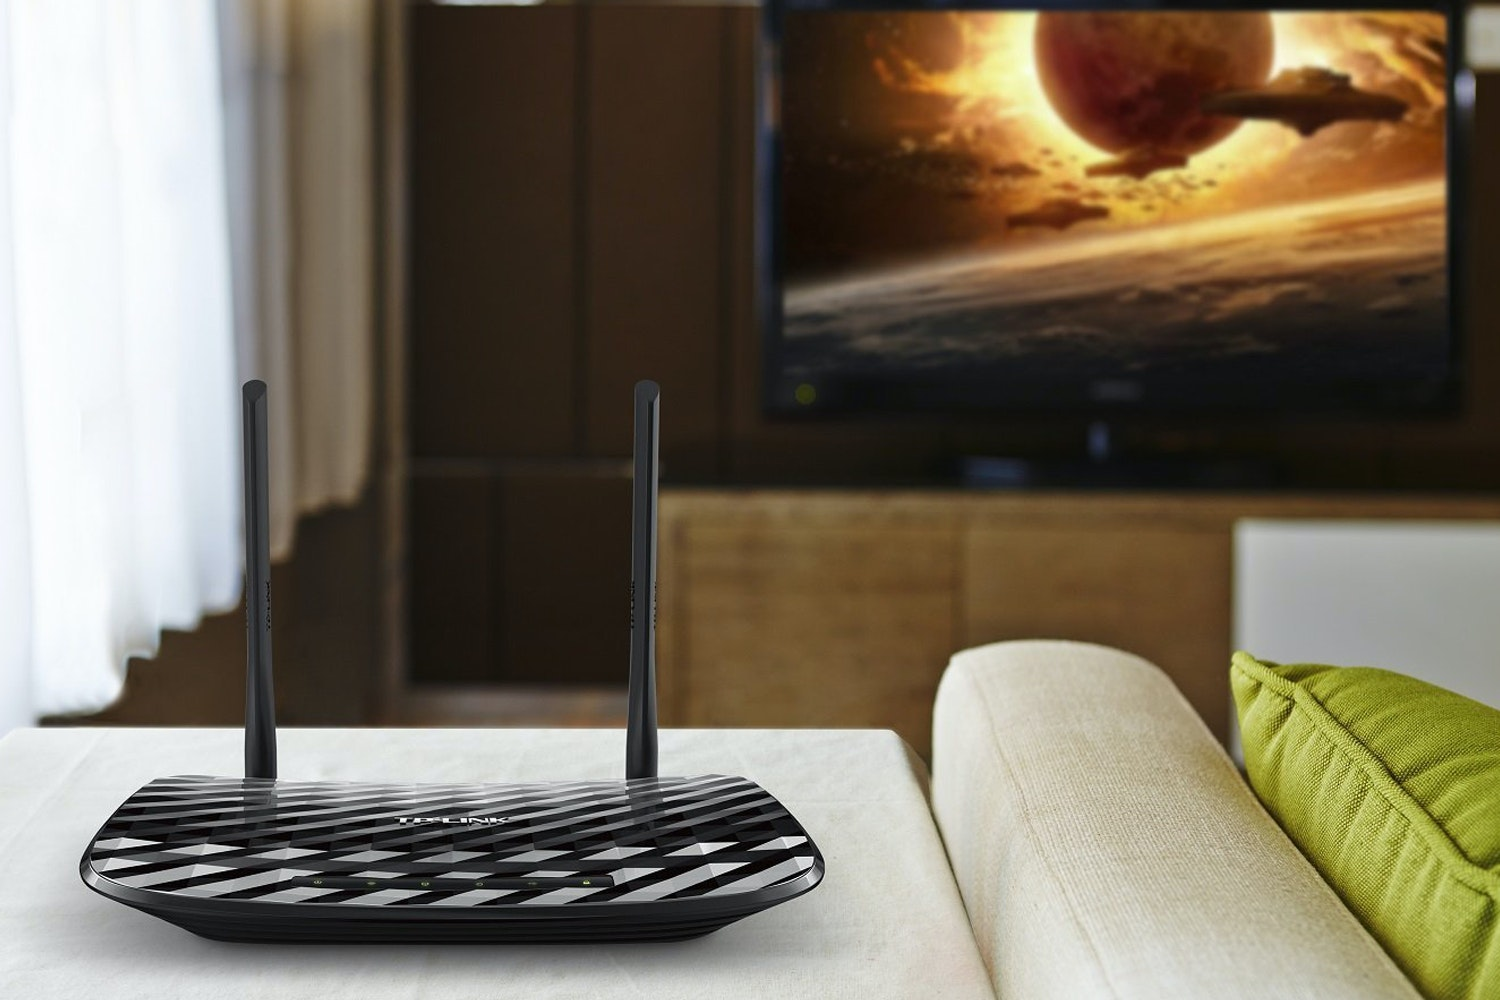 TP-Link AC750 Dual Band Gigabit Router